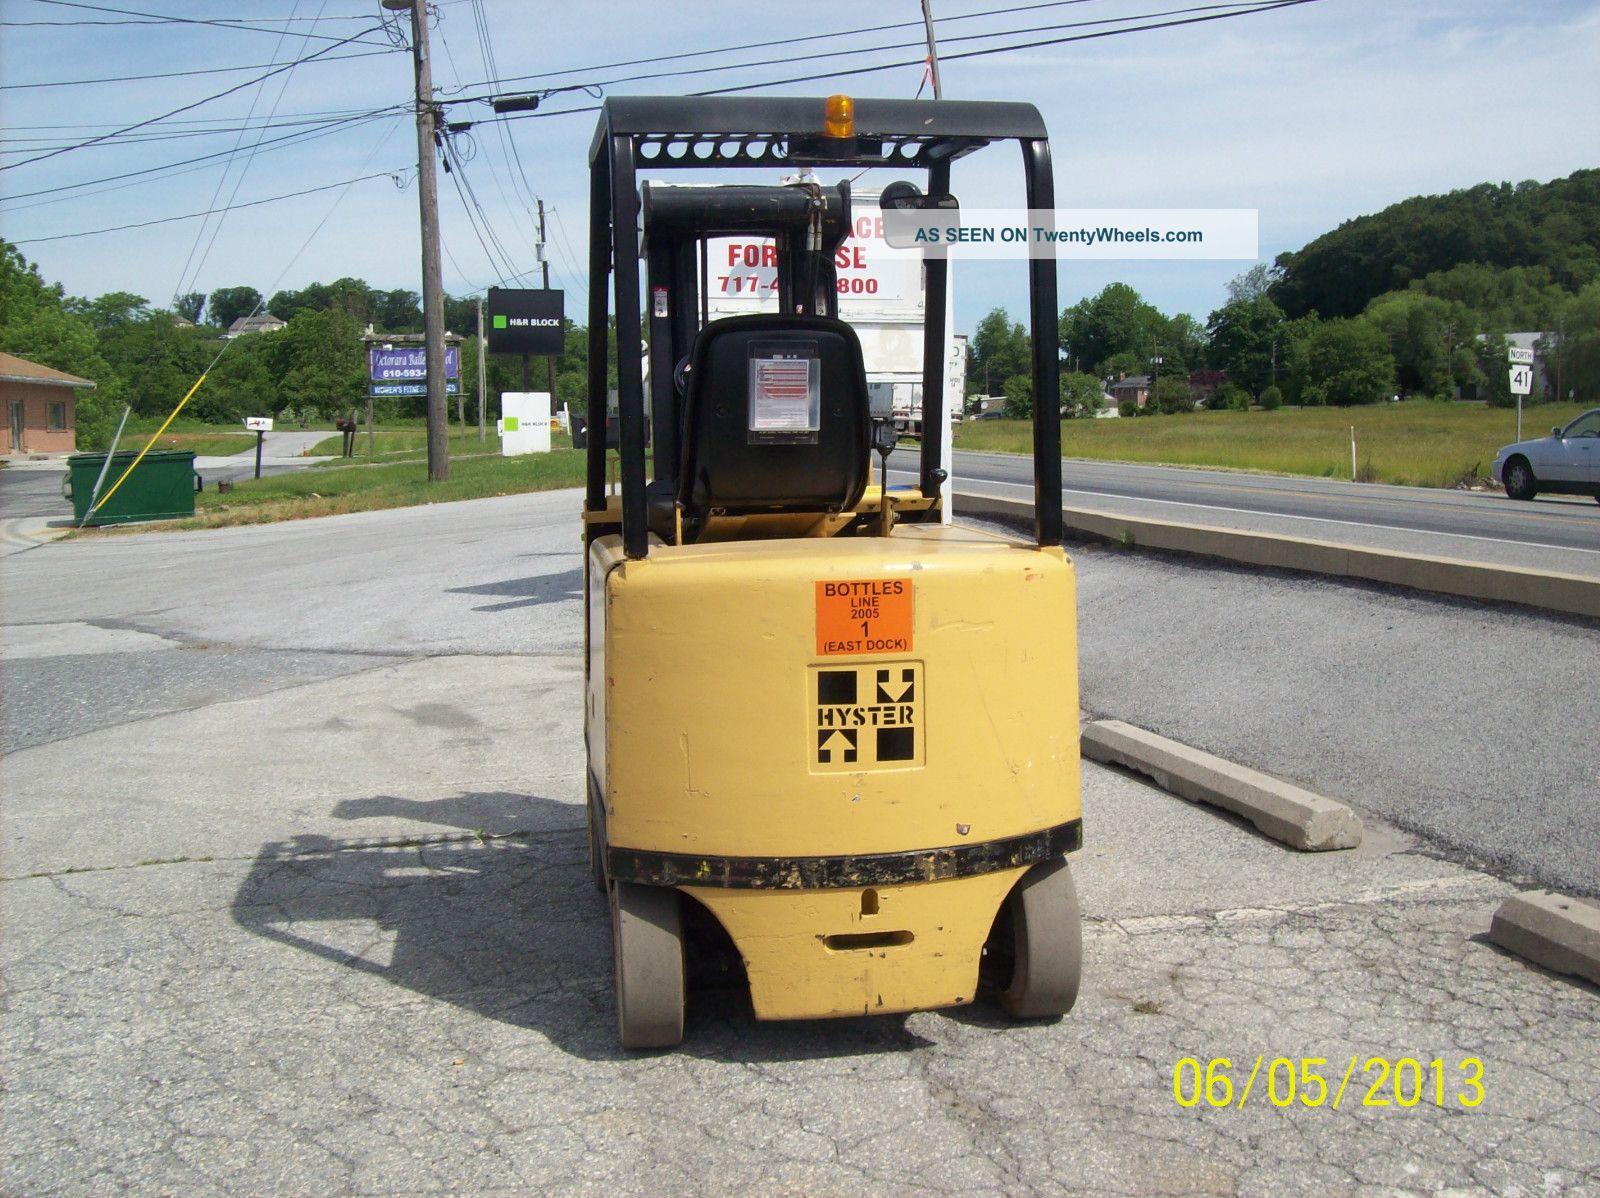 Hyster E50xl 33 Owners Manual 30 Forklift Wiring Diagram Were Proud To Carry Large Inventory Lift Truck At Significant Savings Over Traditional Oem Workshop Essentials Business Law 8e Answer Study Macroeconomics